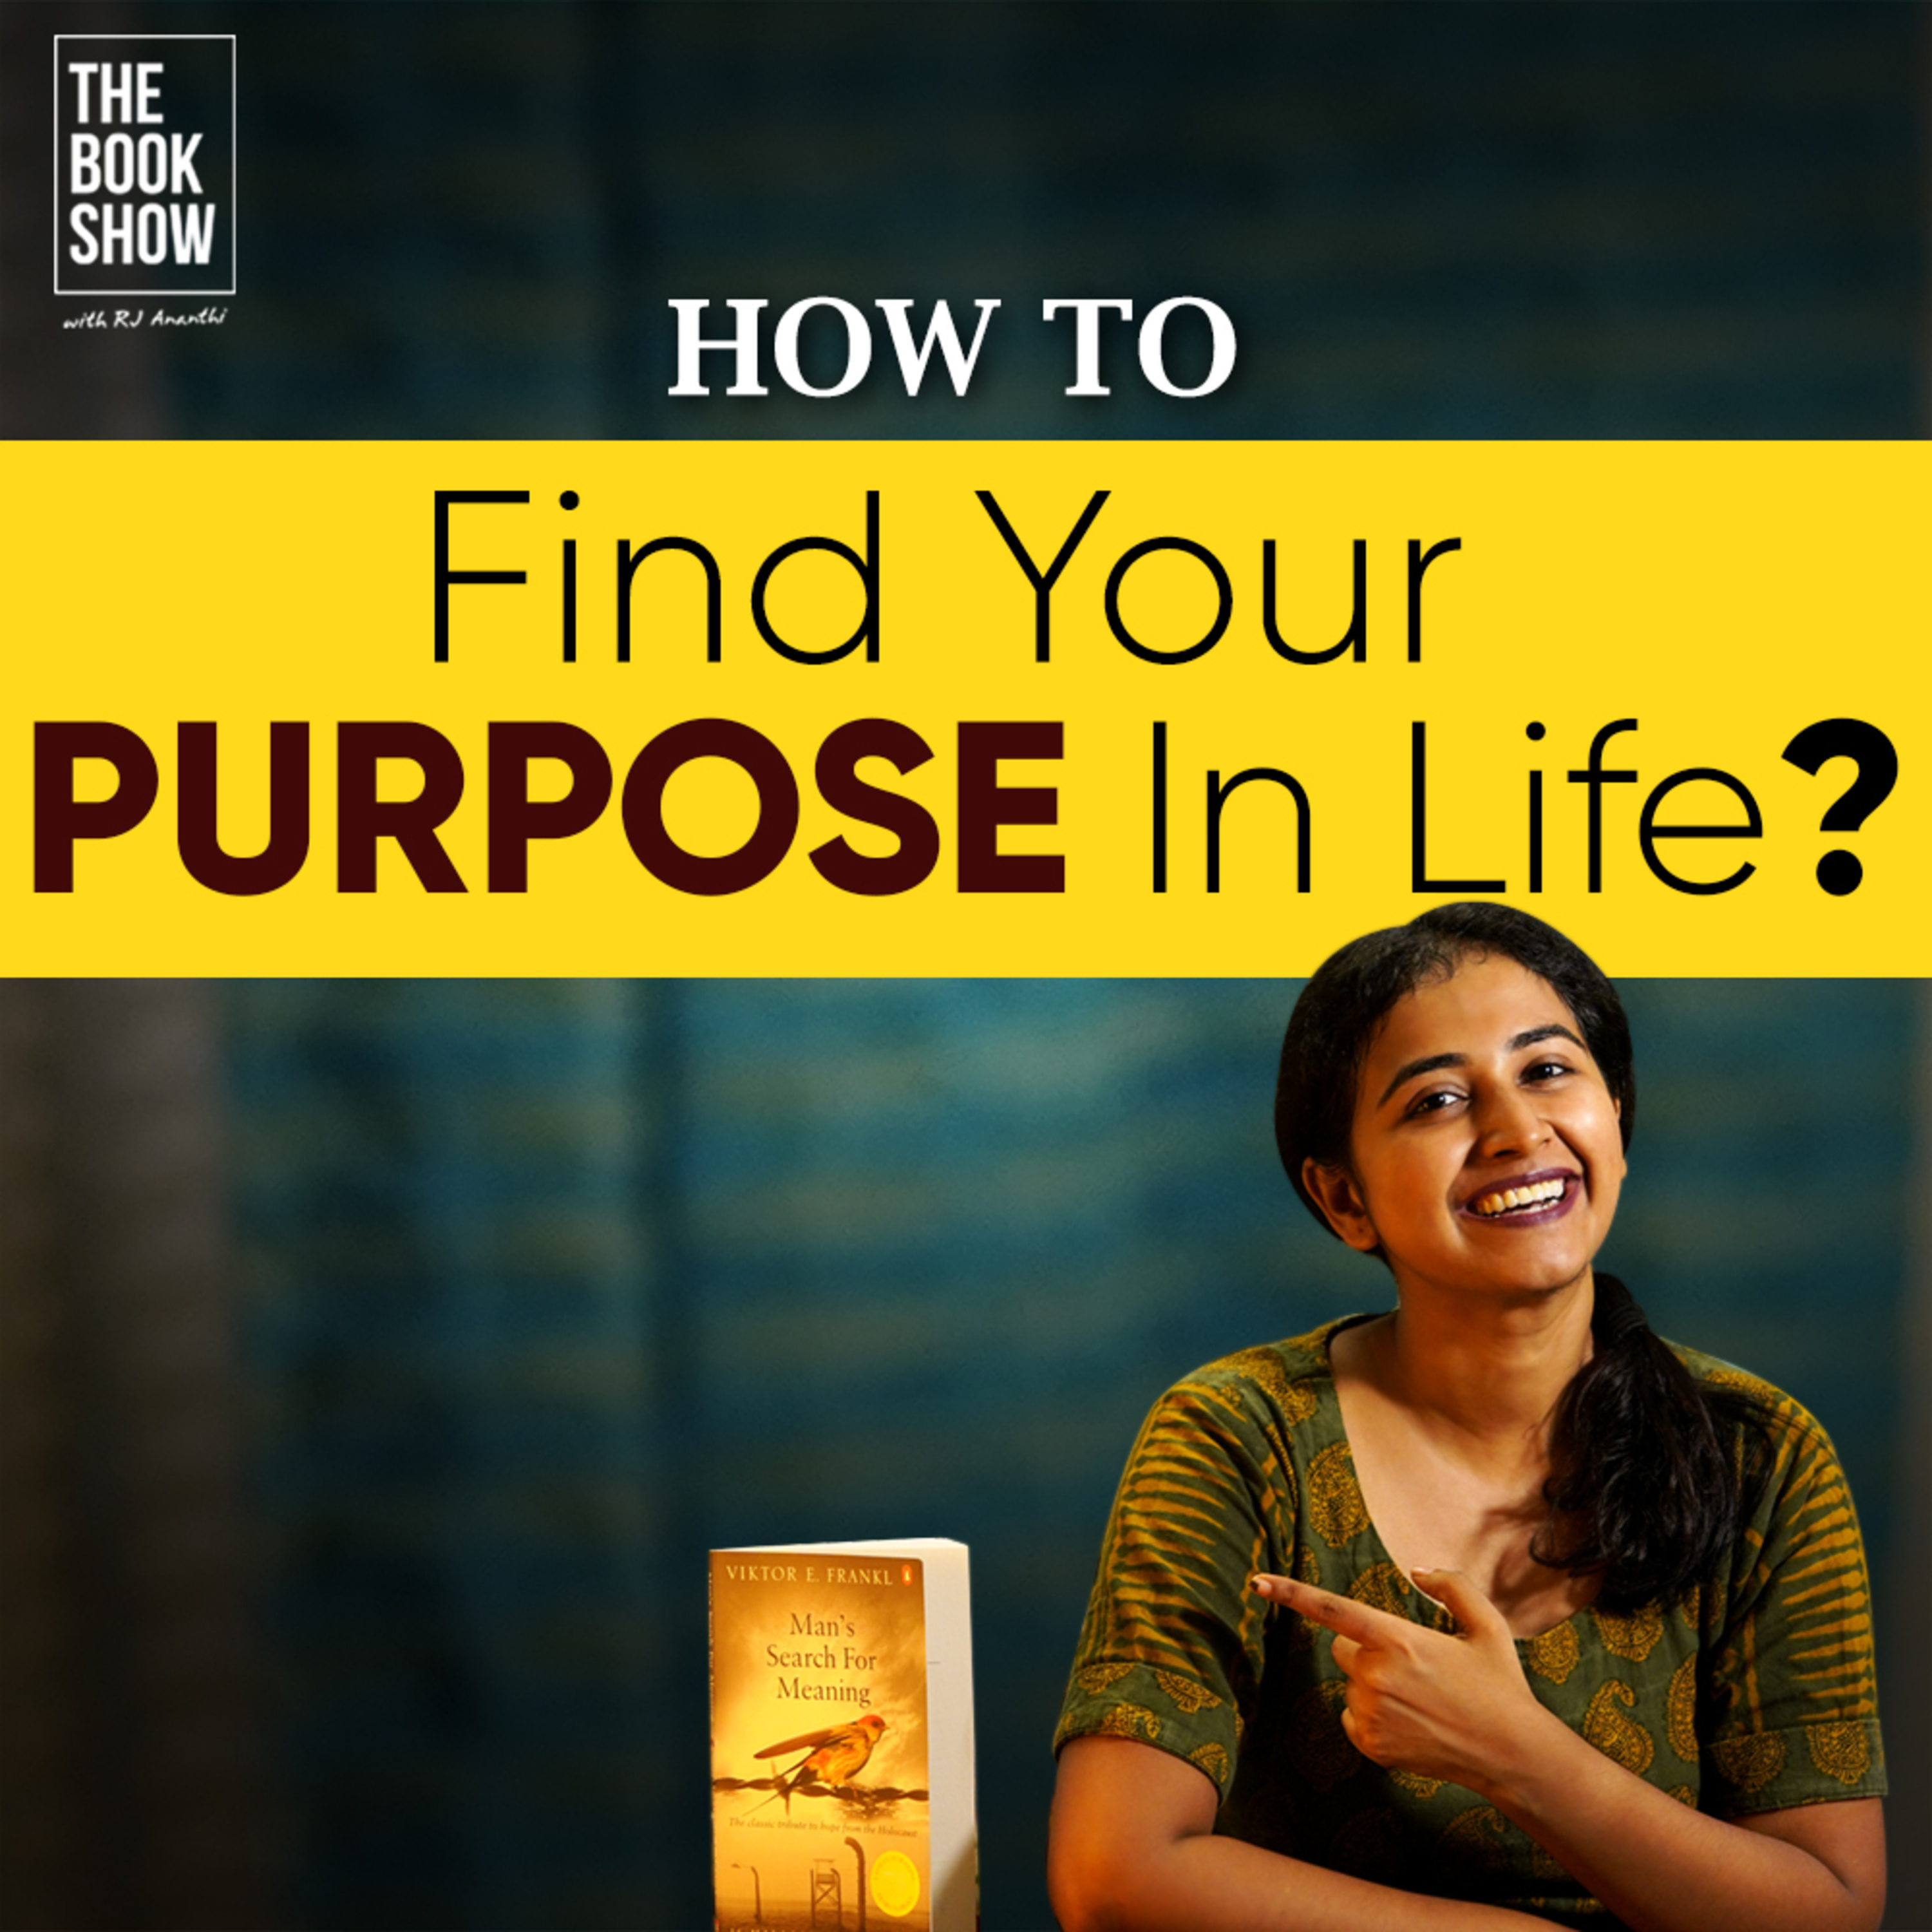 Find Your Purpose In Life   Bookmark ft. RJ Ananthi   The Book Show